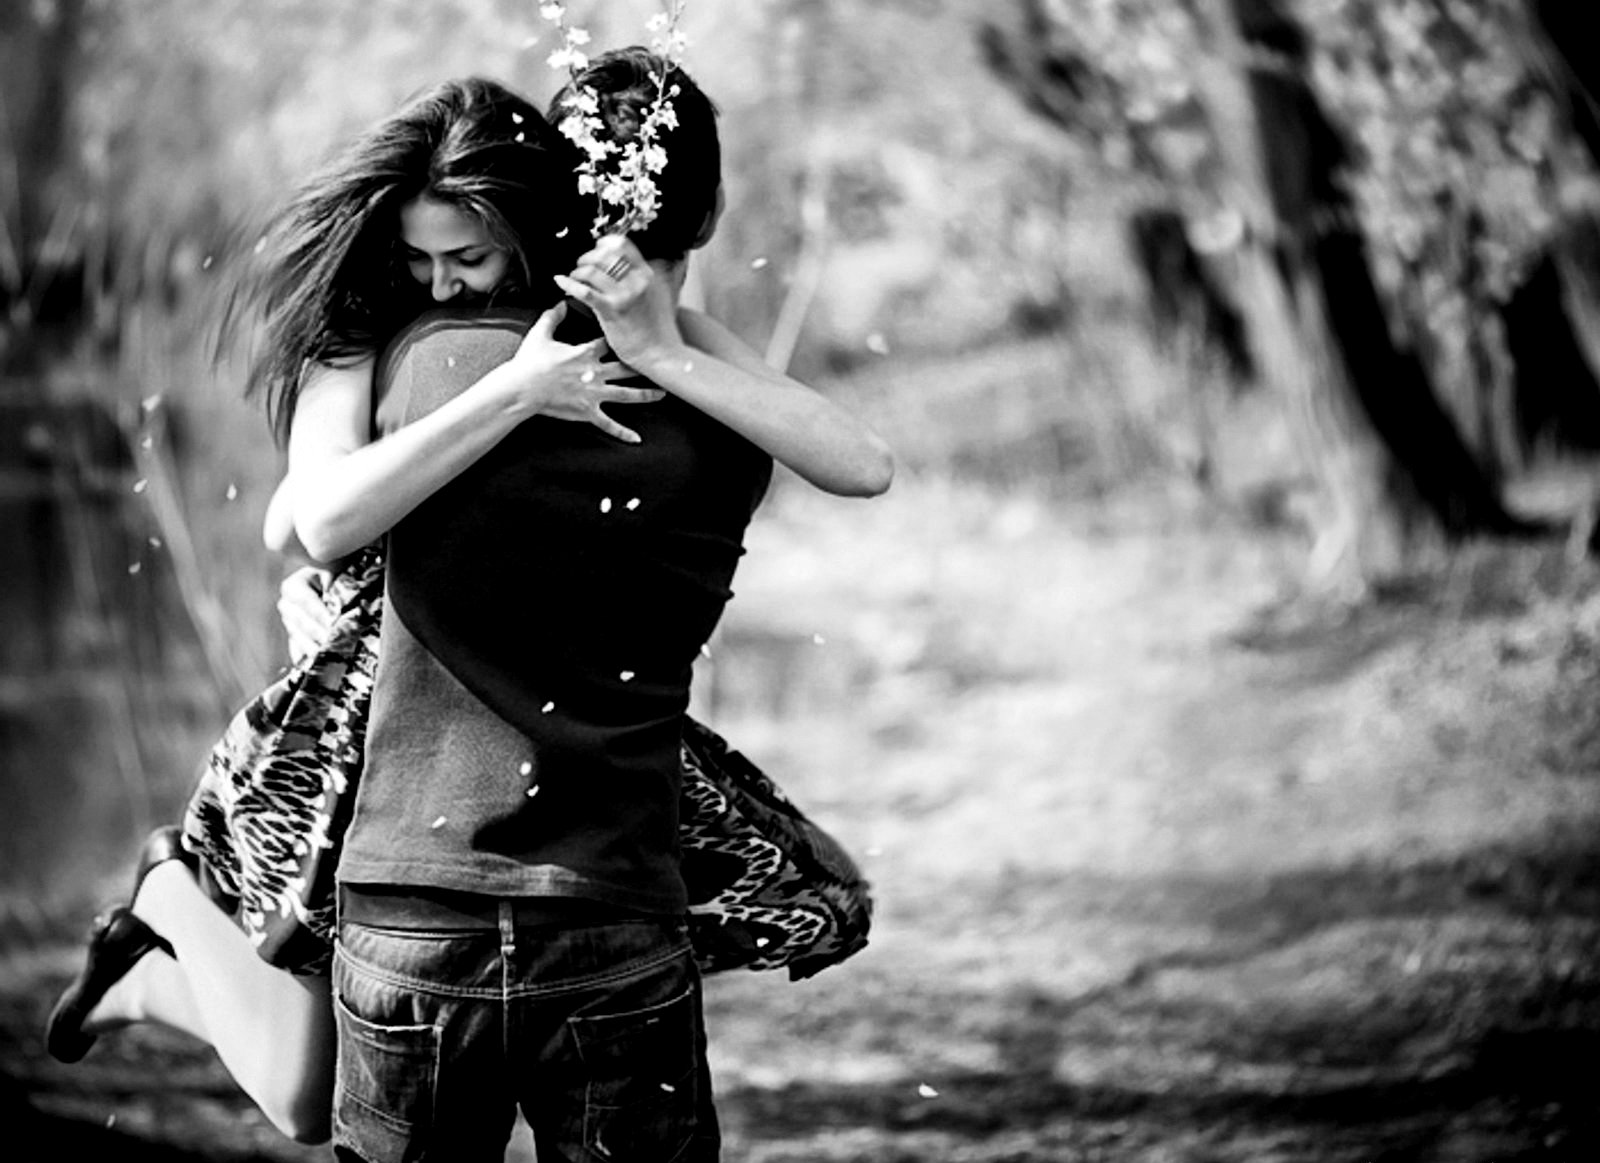 http://kparticleworld.files.wordpress.com/2014/12/1309d-hd-black-and-white-couples-hug-wallpapers252892529.jpg